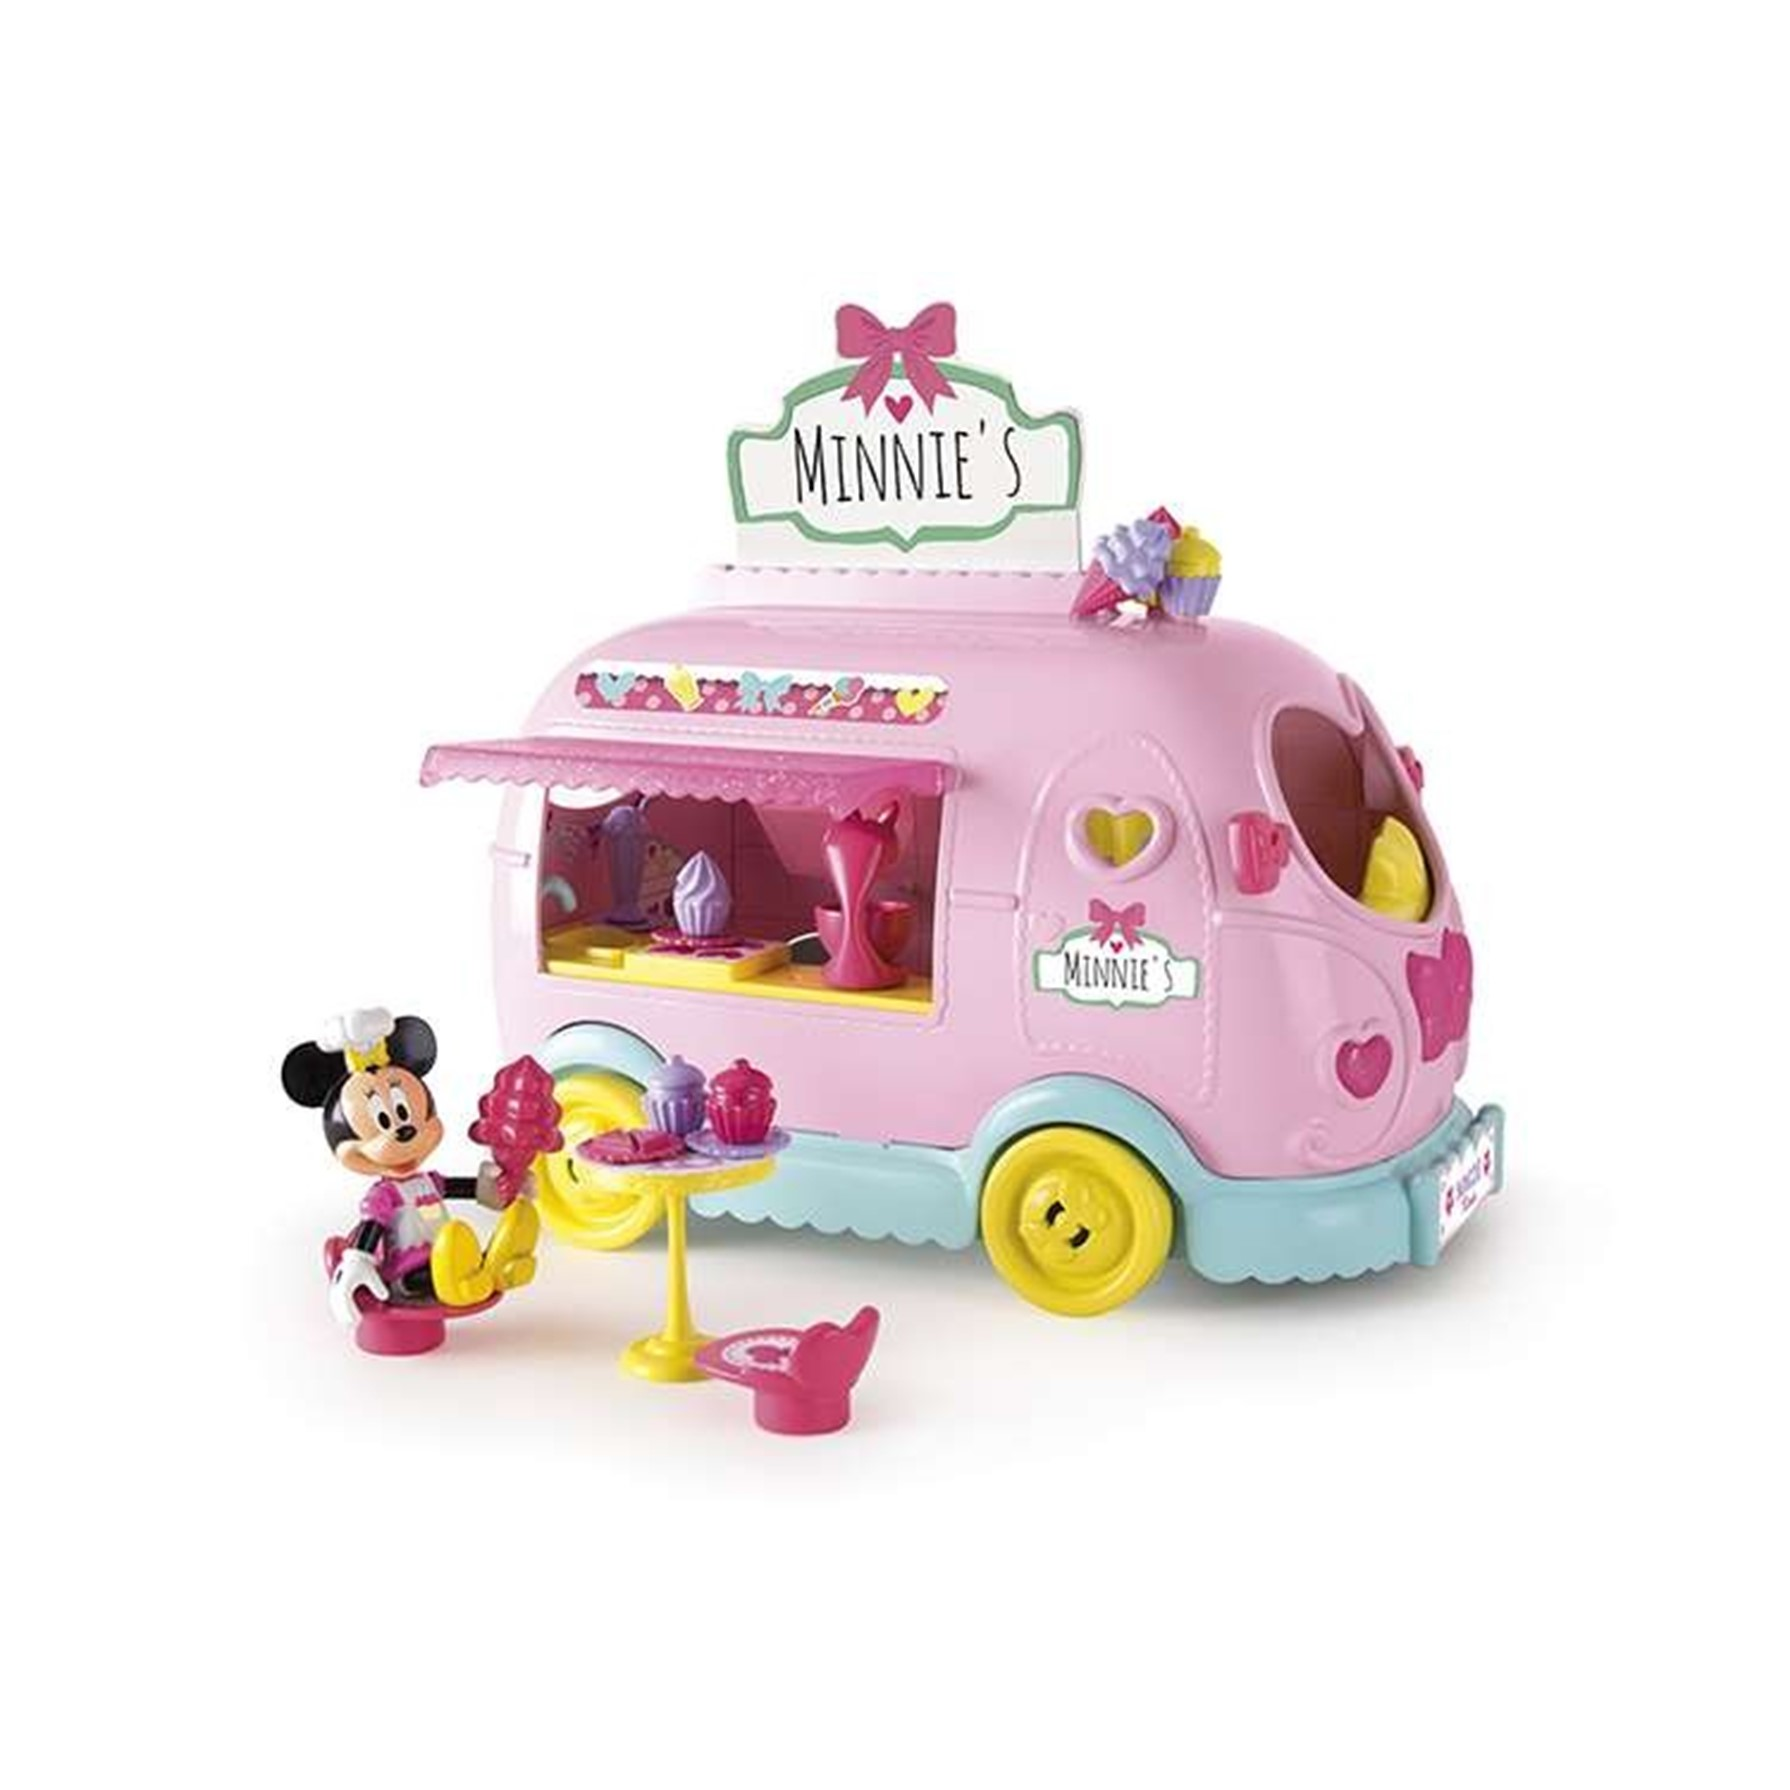 Minnie Caravana Sweets & Candies